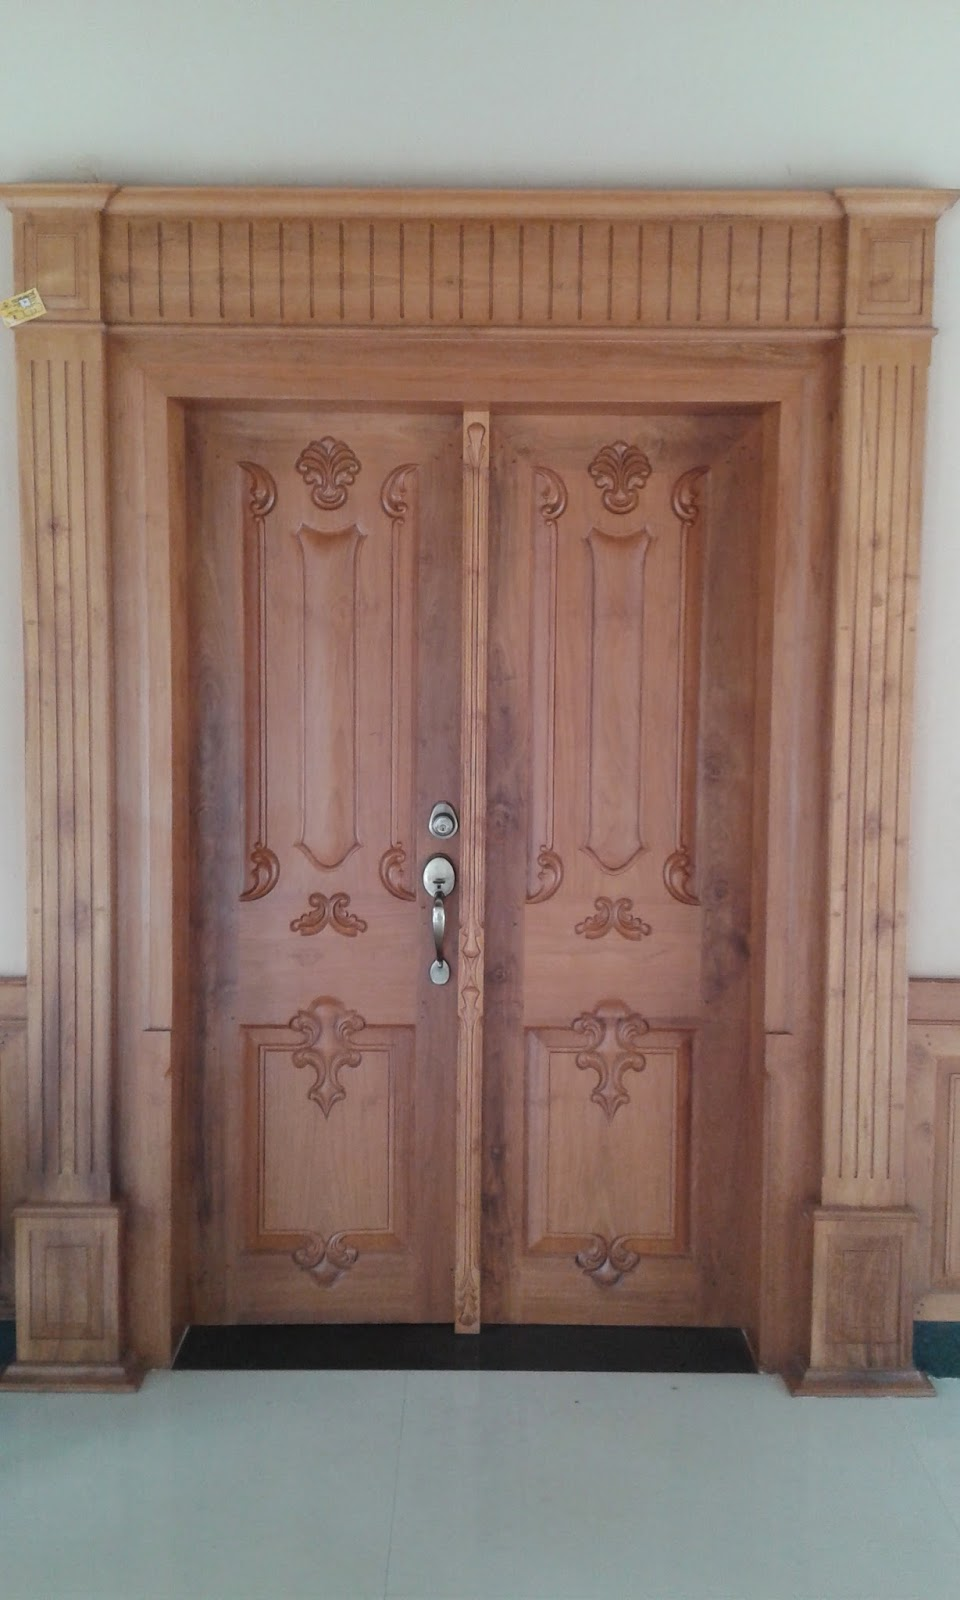 Kerala style carpenter works and designs Wooden main door designs in india